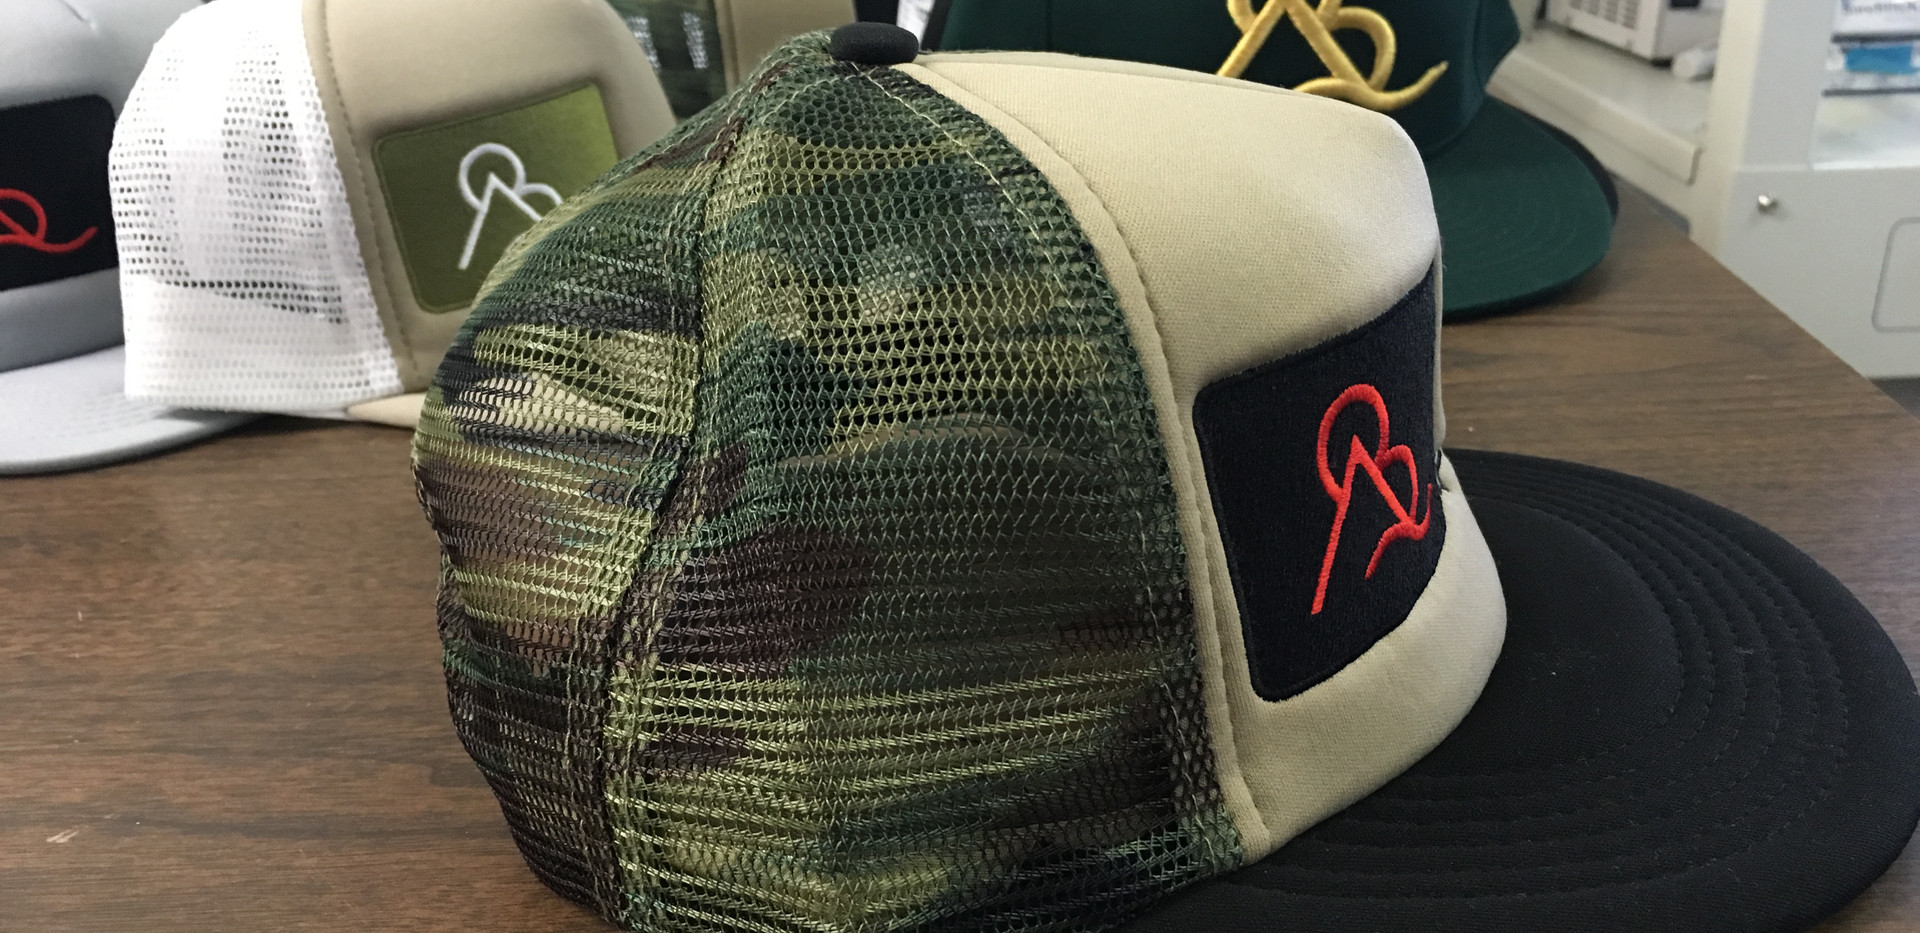 Embroidered hat project